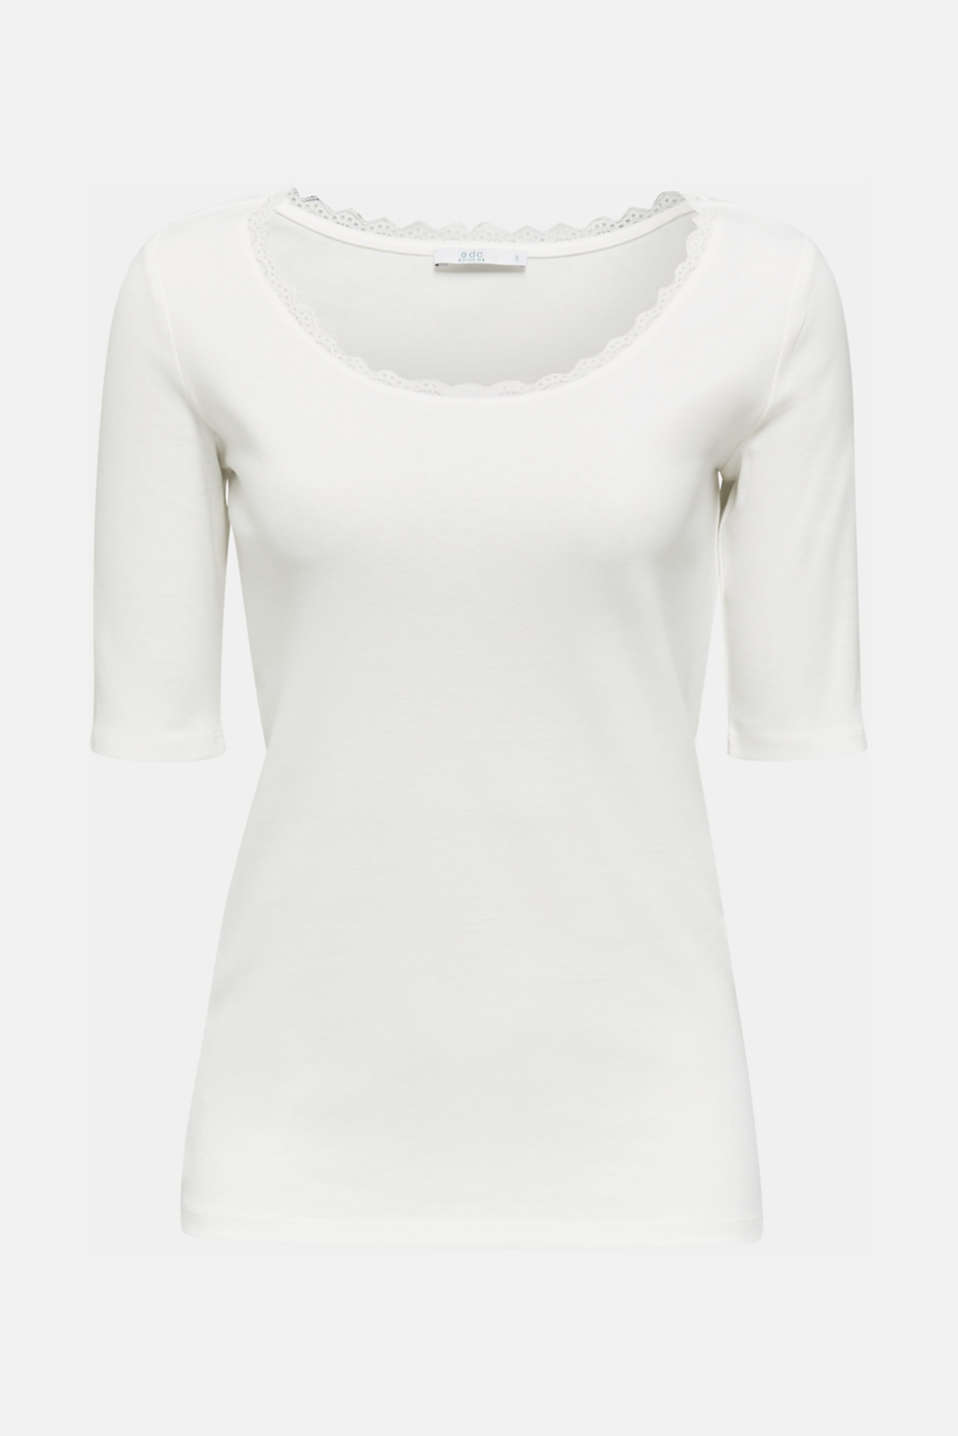 Ribbed shirt with a lace-trimmed neckline, 100% cotton, OFF WHITE, detail image number 6